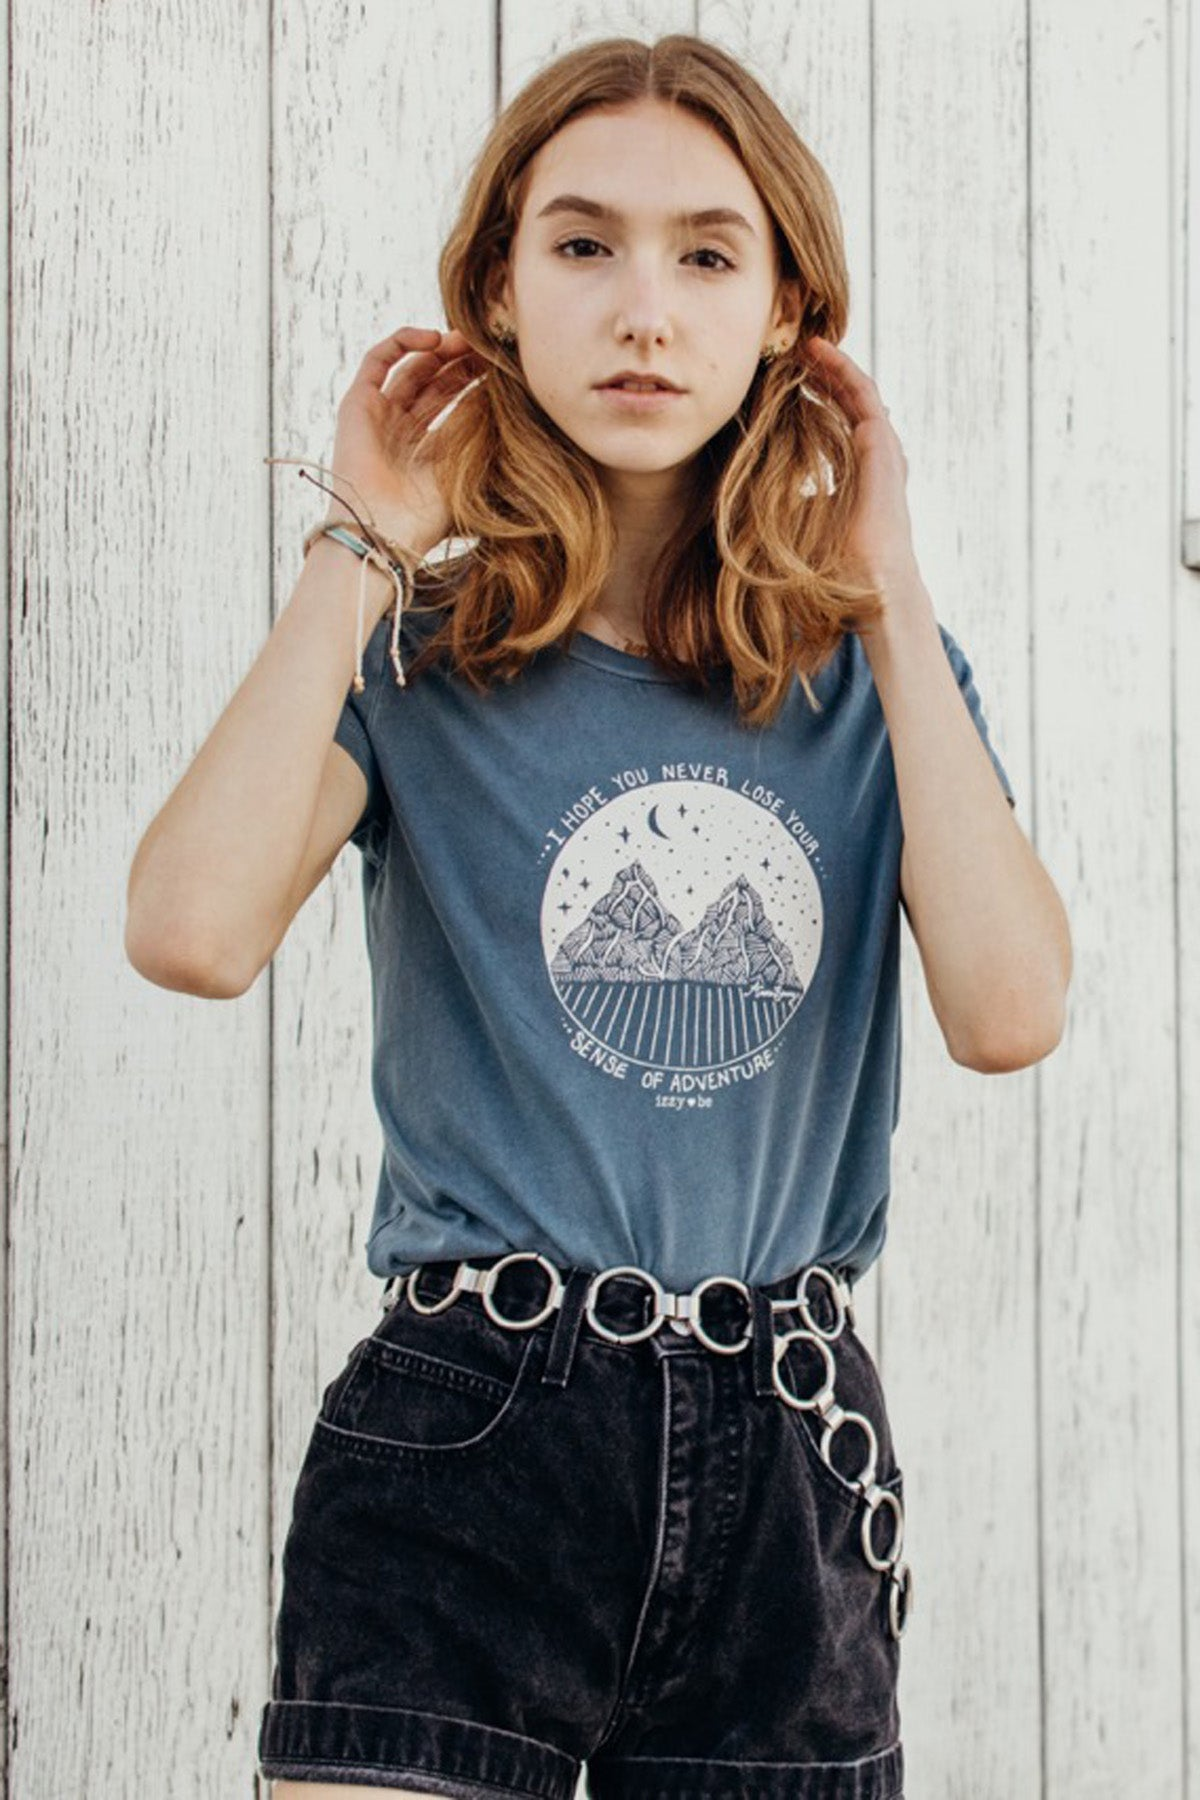 I Hope You never Lose Your Sense Of Adventure. Perfect Tee in Vintage Light Blue